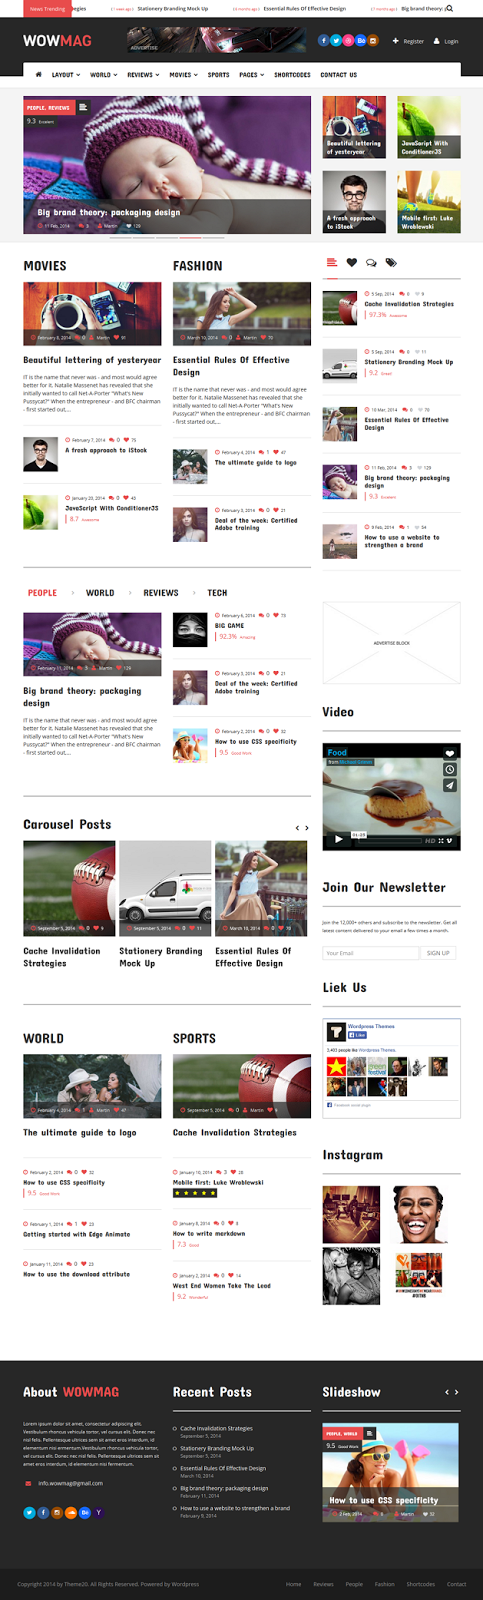 Responsive Magazine Website Theme